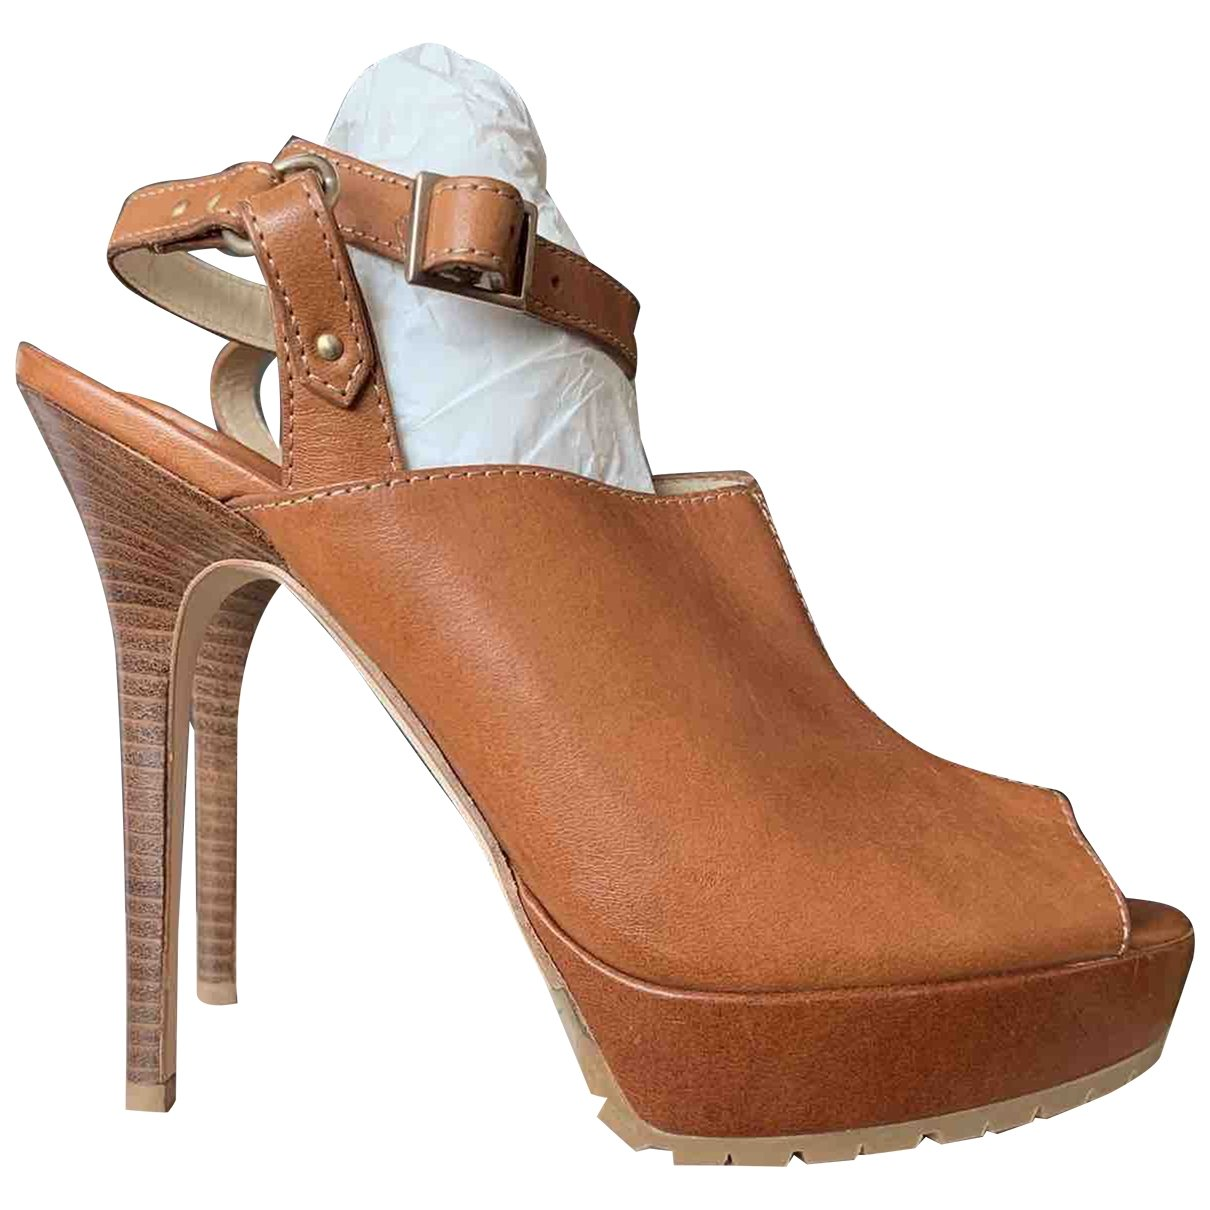 Jimmy Choo N Camel Leather Ankle boots for Women